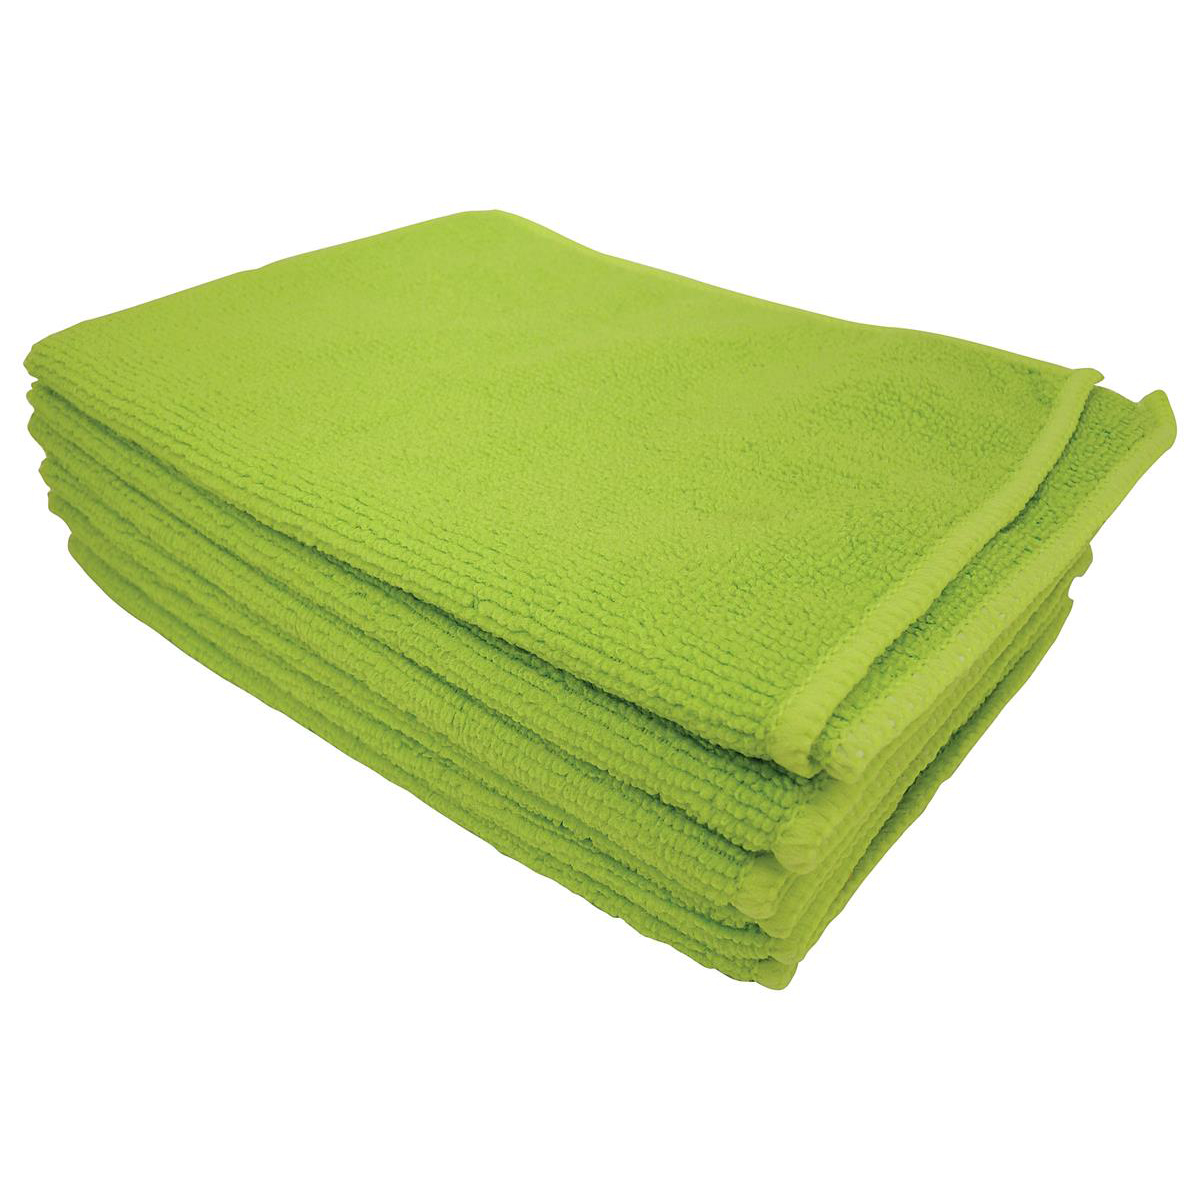 5 Star Facilities Microfibre Cleaning Cloths Colour-coded Dry or Damp Multi-surface Use Green Pack 6